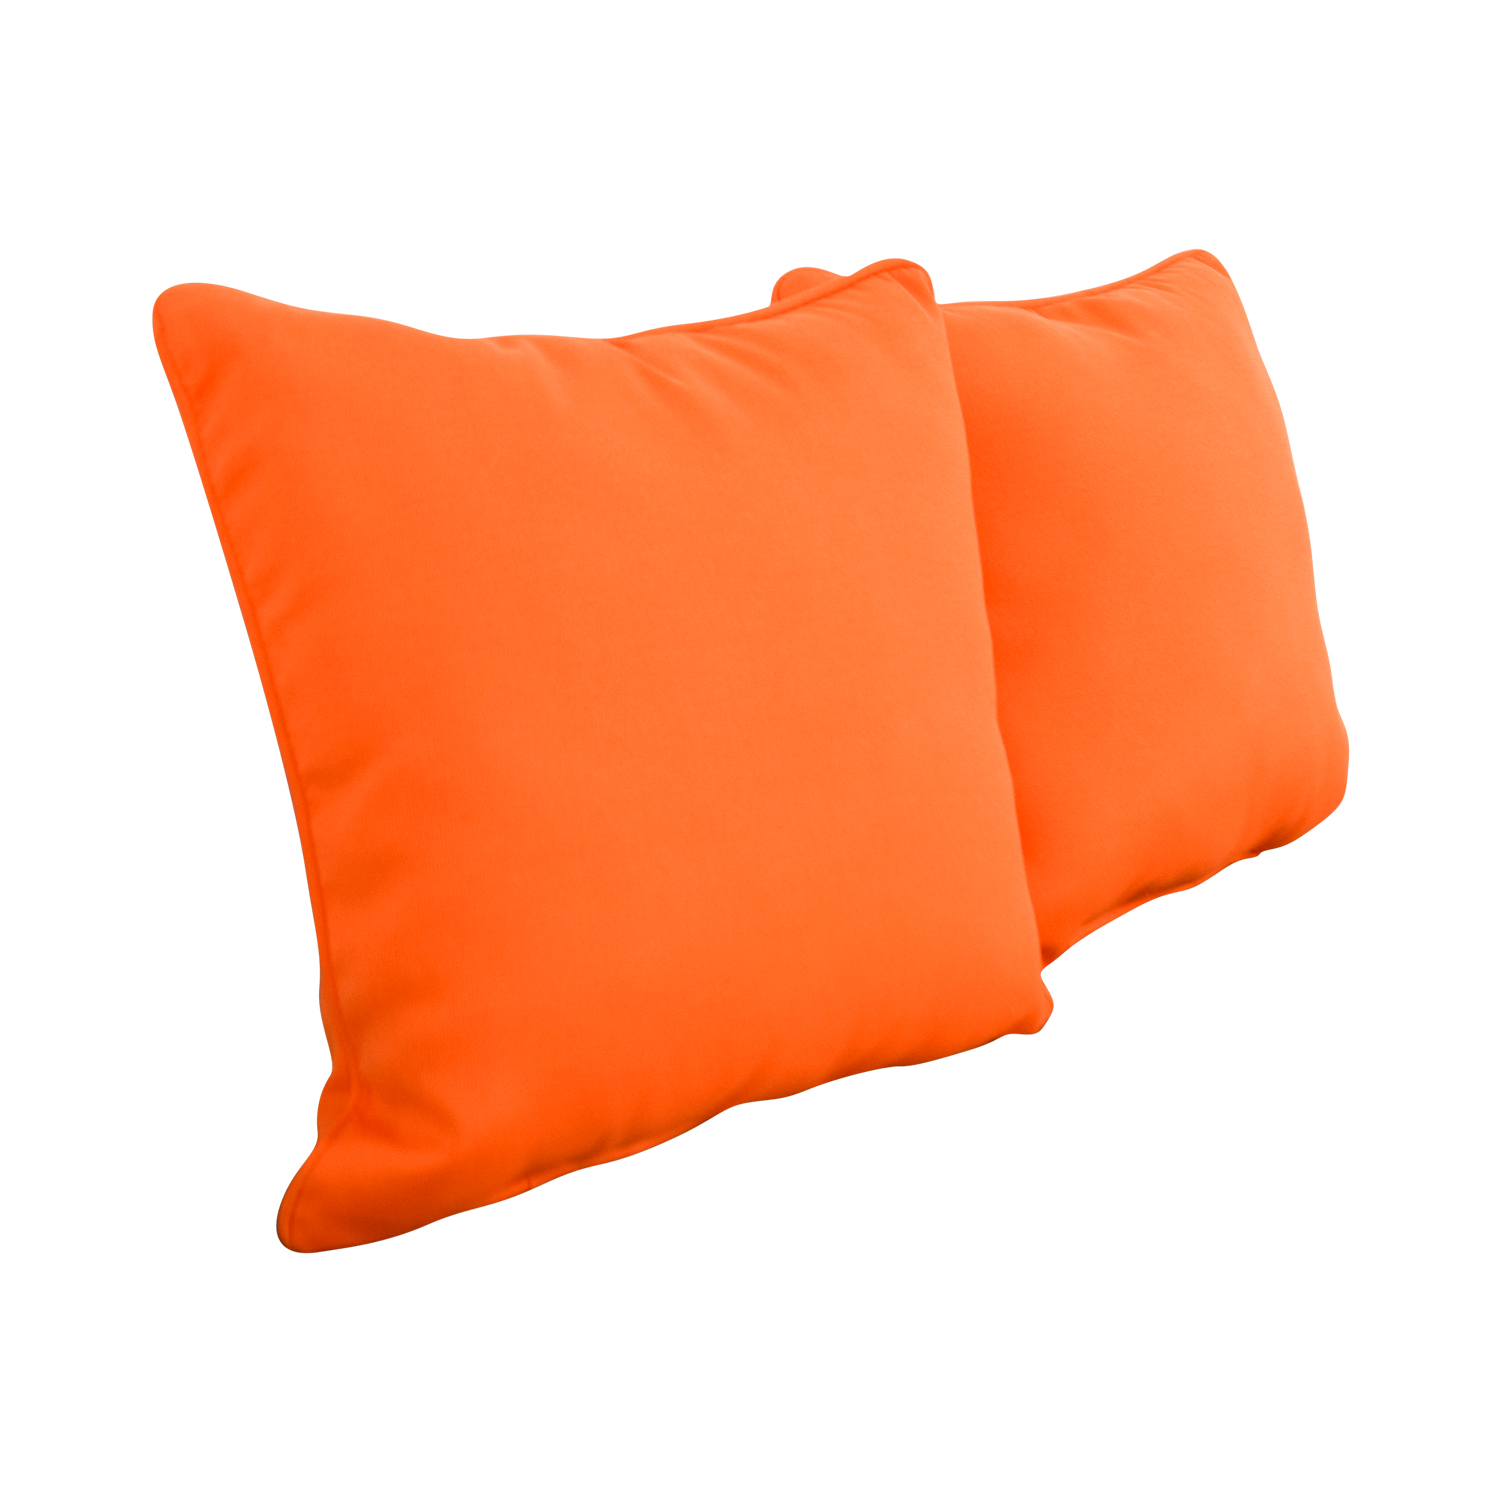 il navy linen fullxfull pillow blue orange white zoom solid listing pillows cover color block